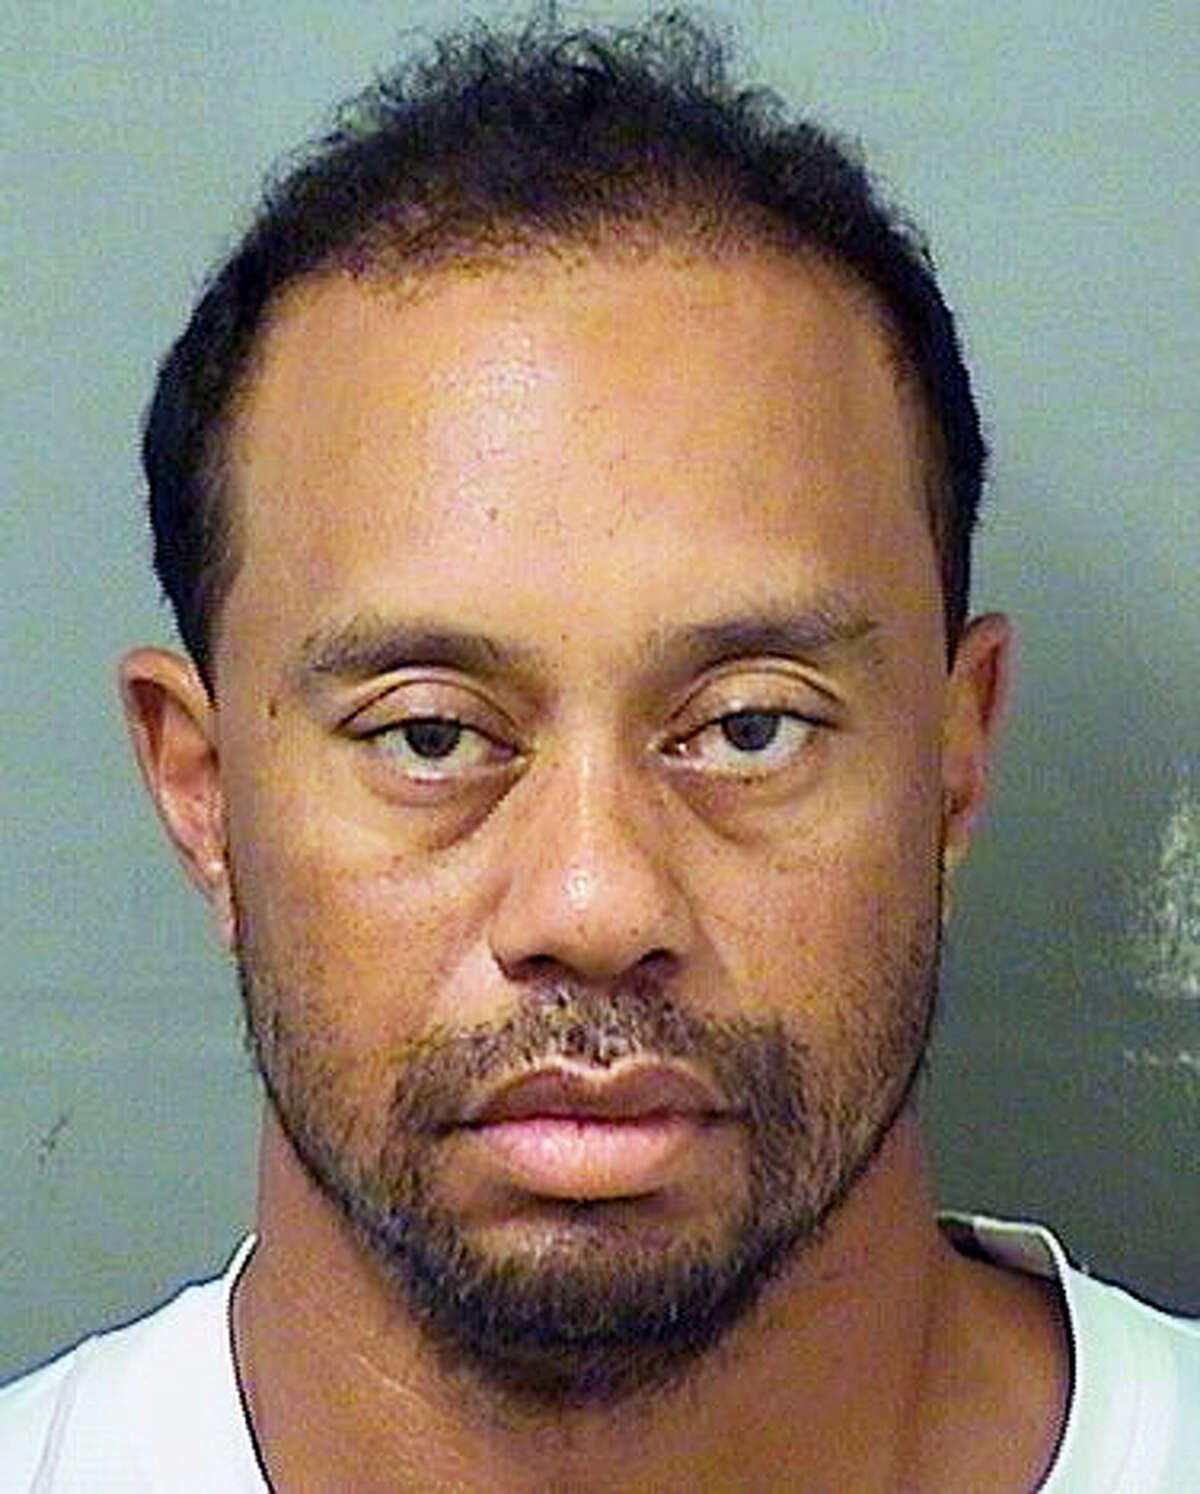 This image provided by the Palm Beach County Sheriff's Office on May 29, 2017 shows Tiger Woods. Police in Florida say Tiger Woods has been arrested for DUI. The Palm Beach County Sheriff's Office says on its website that the golf great was arrested Monday and booked at about 7 a.m.